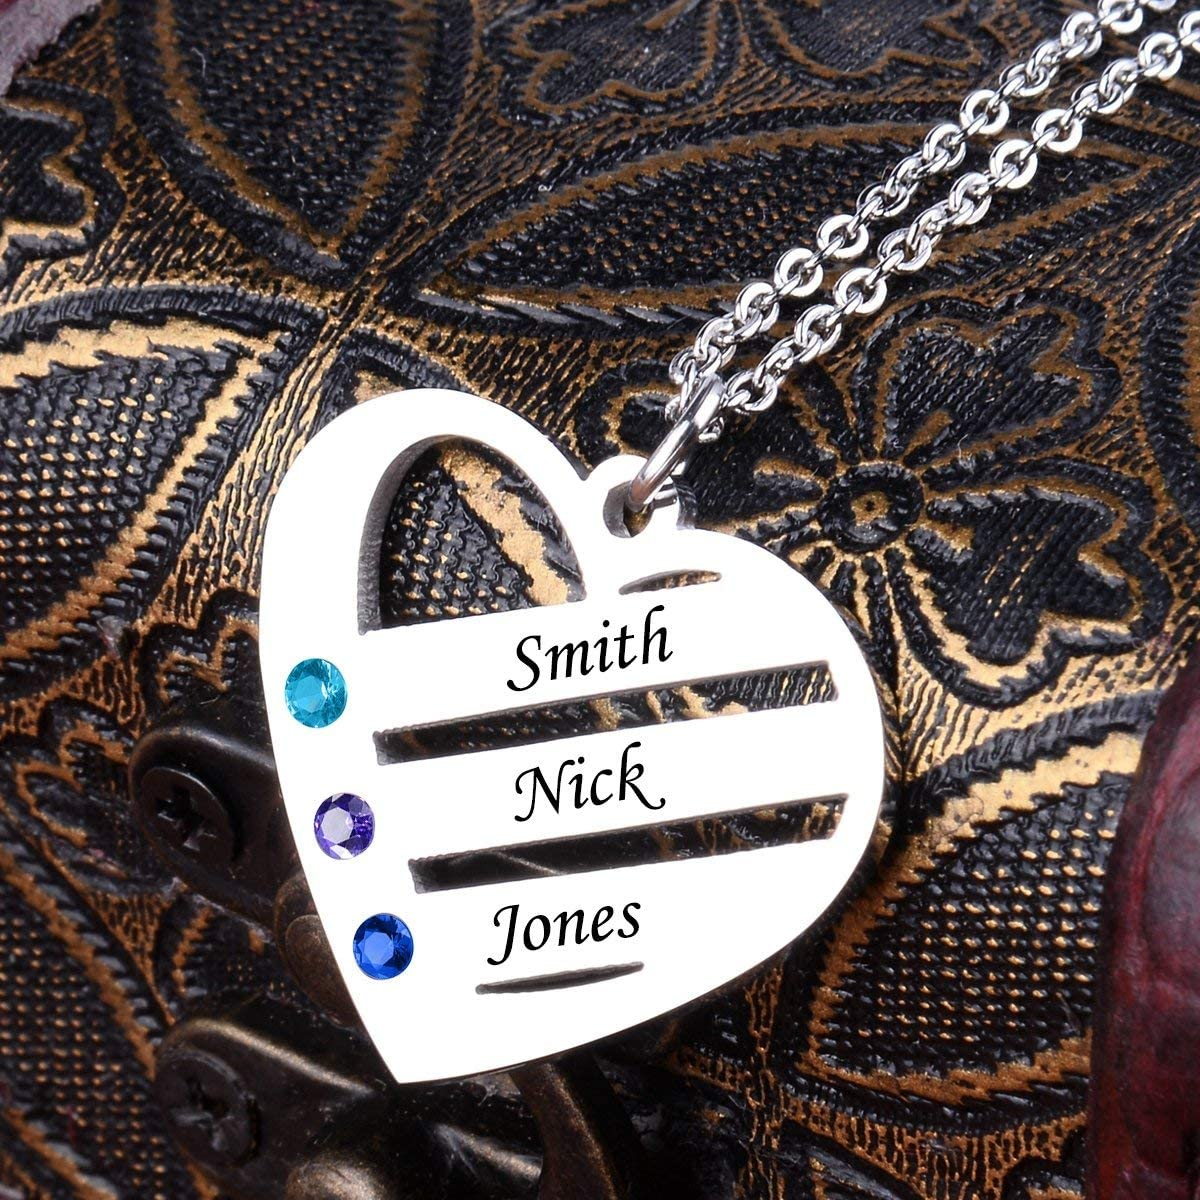 Men VERSUSWOLF 925 Sterling Silver Heart Pendants Necklaces Custom Pendan with Any 3 Names and 3 Birthsone Stone Engrave Name Necklace Jewelry